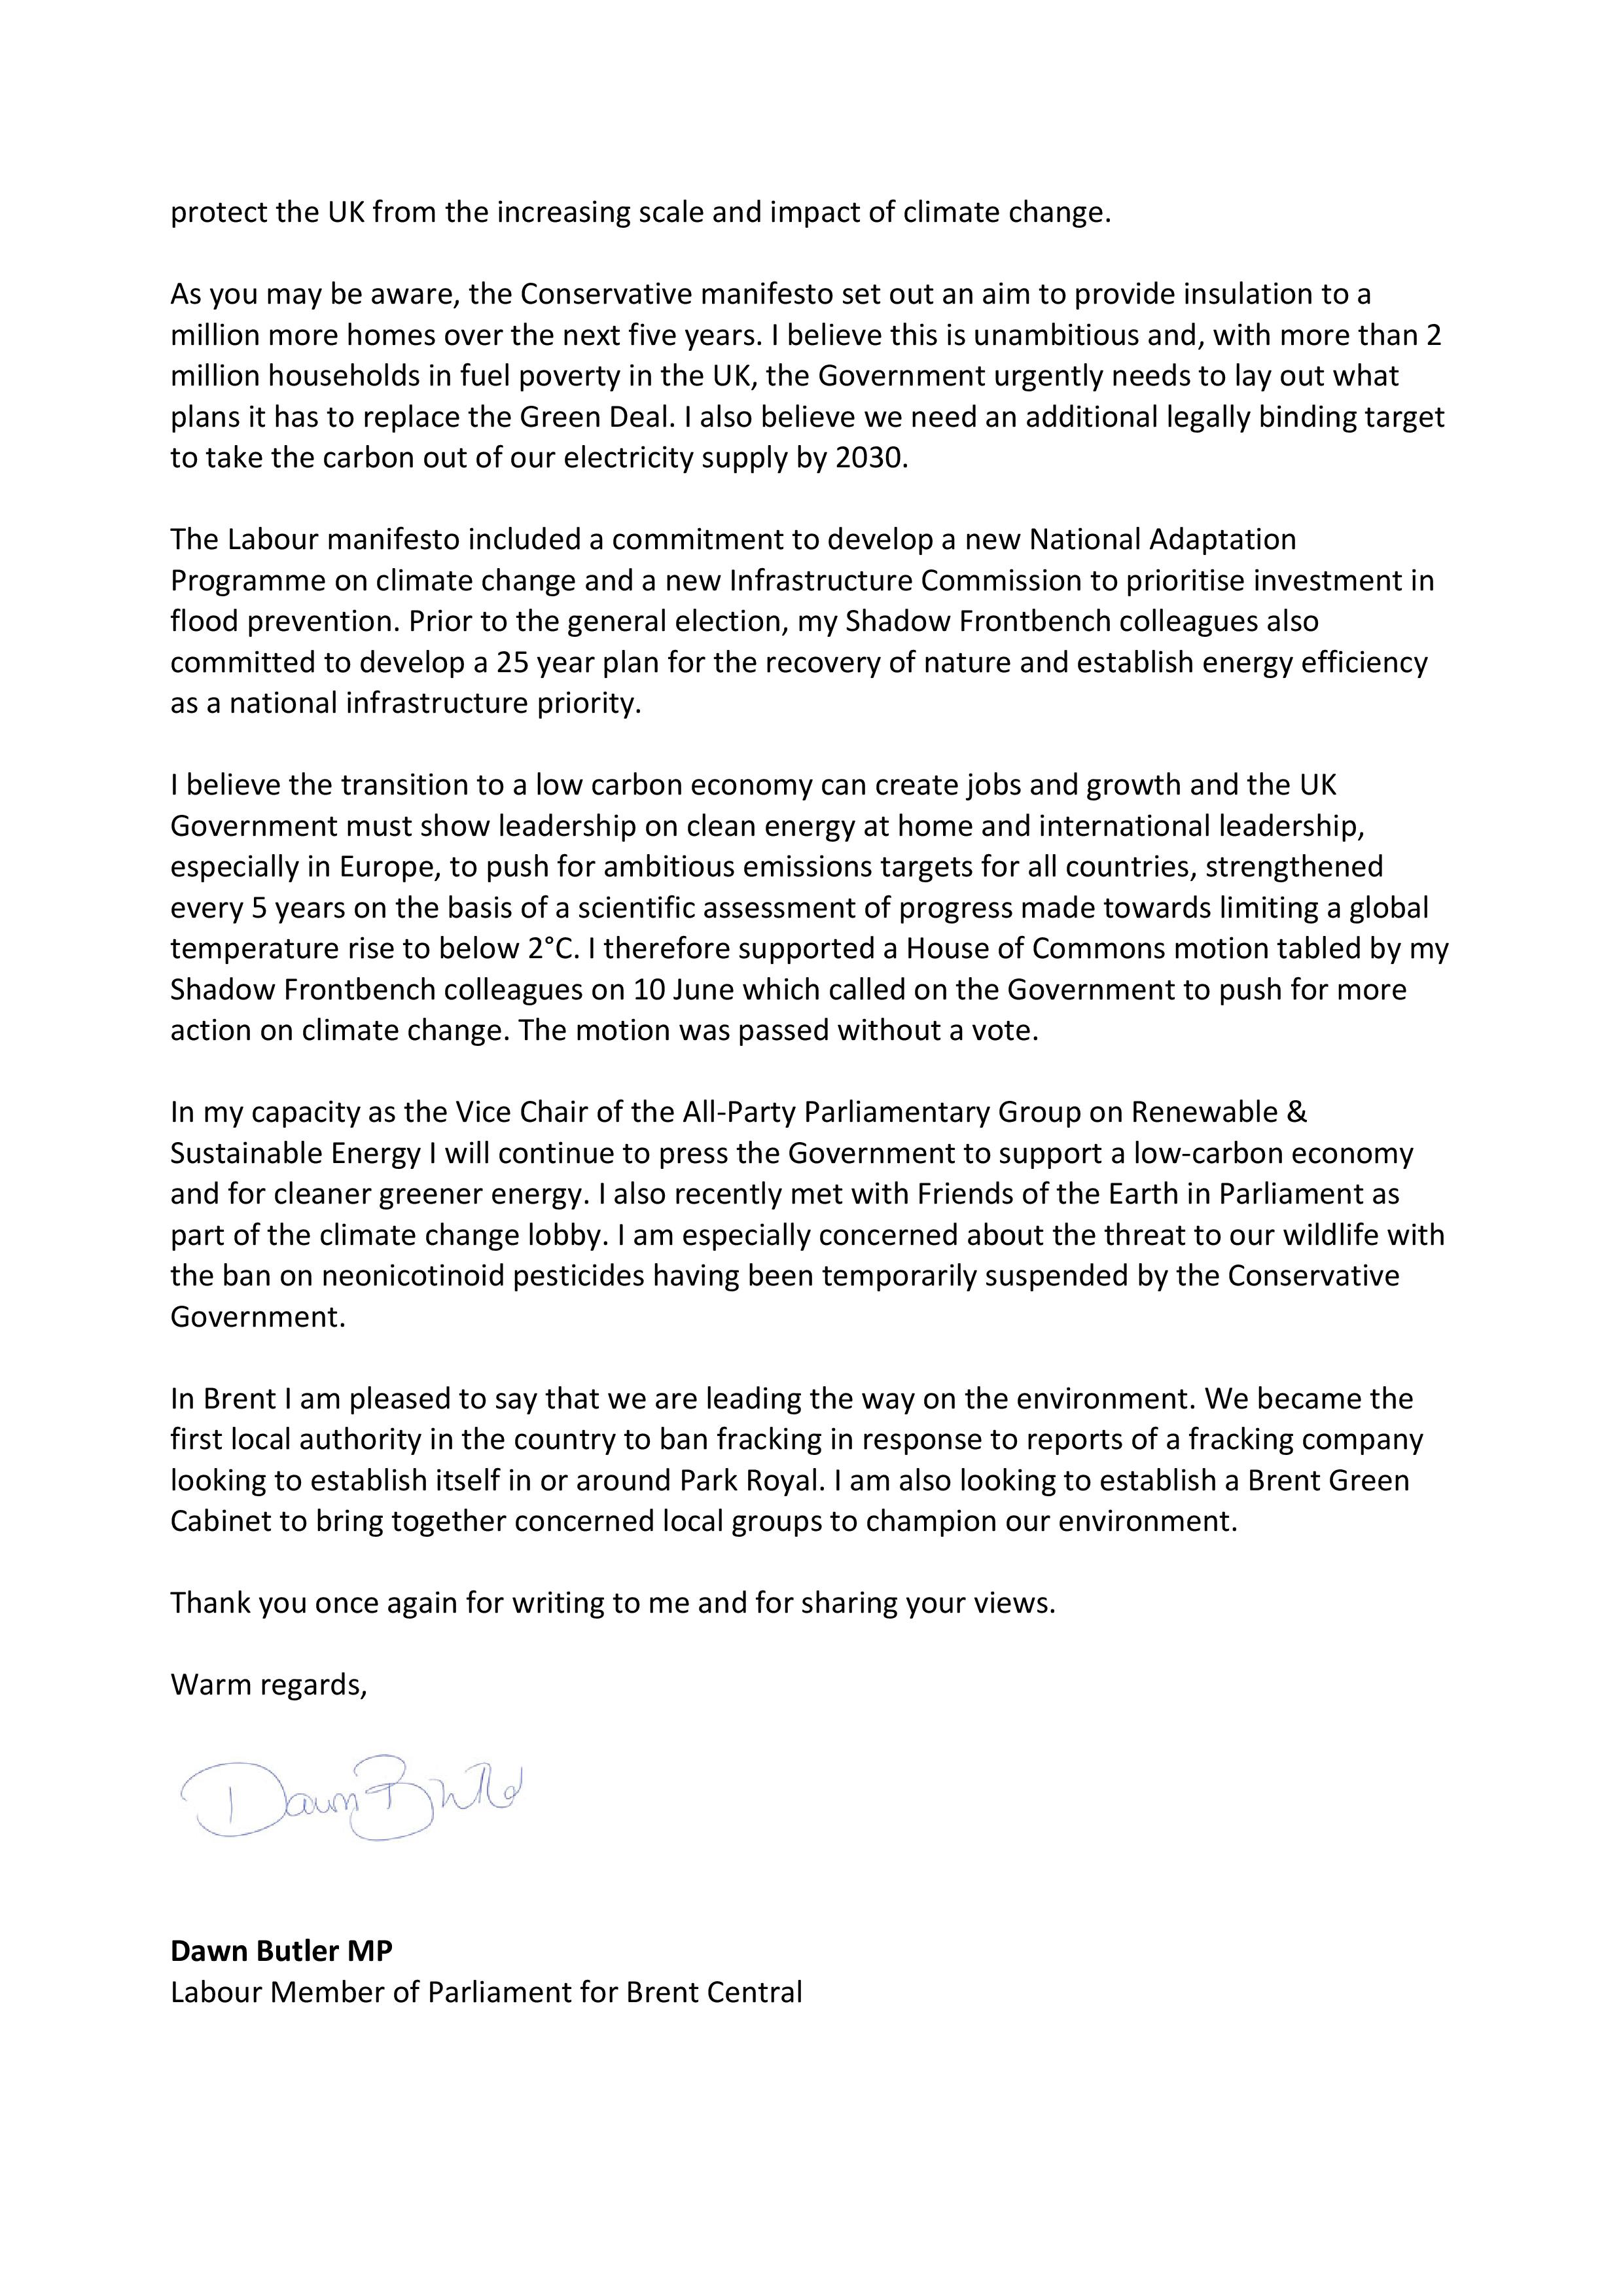 Climate_Change_Letter-page-002.jpg